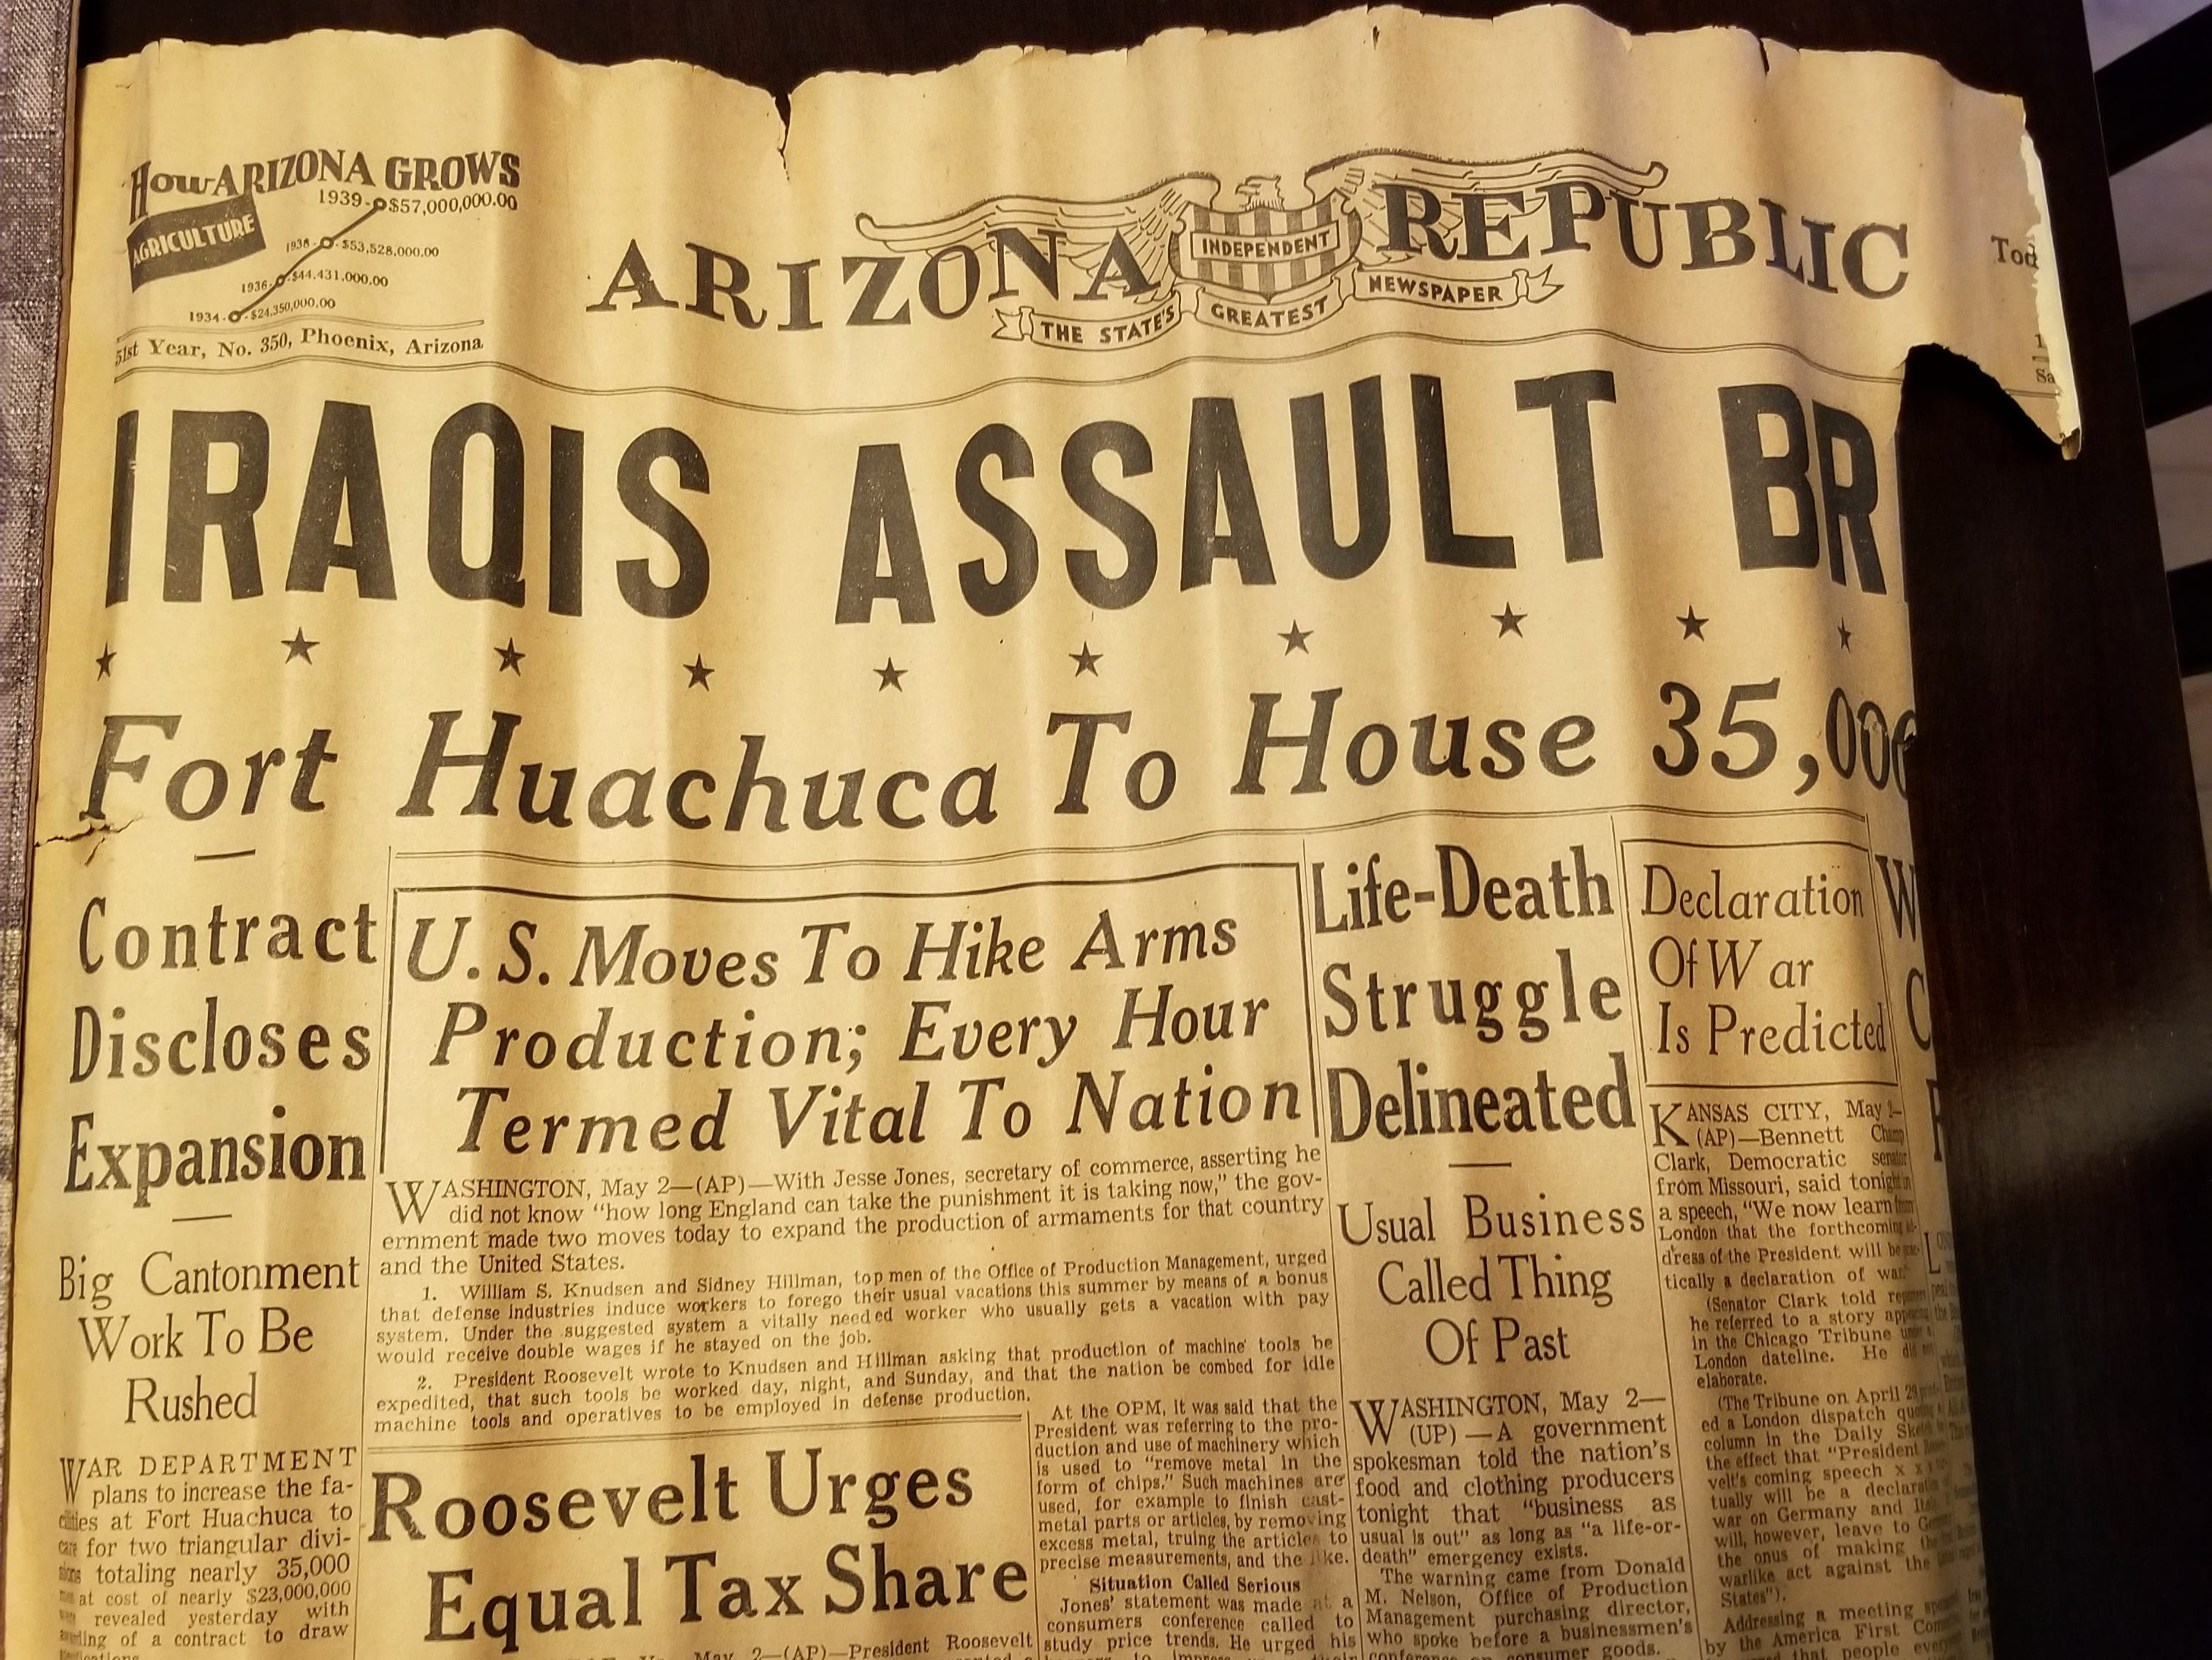 Insulation is scarce in the century-old home, and residents used what they could to fill wall and door jams. This weathered 1939 Arizona Republic was among them. It was retrieved from a door jamb during the renovation and saved by Bud Zomok.